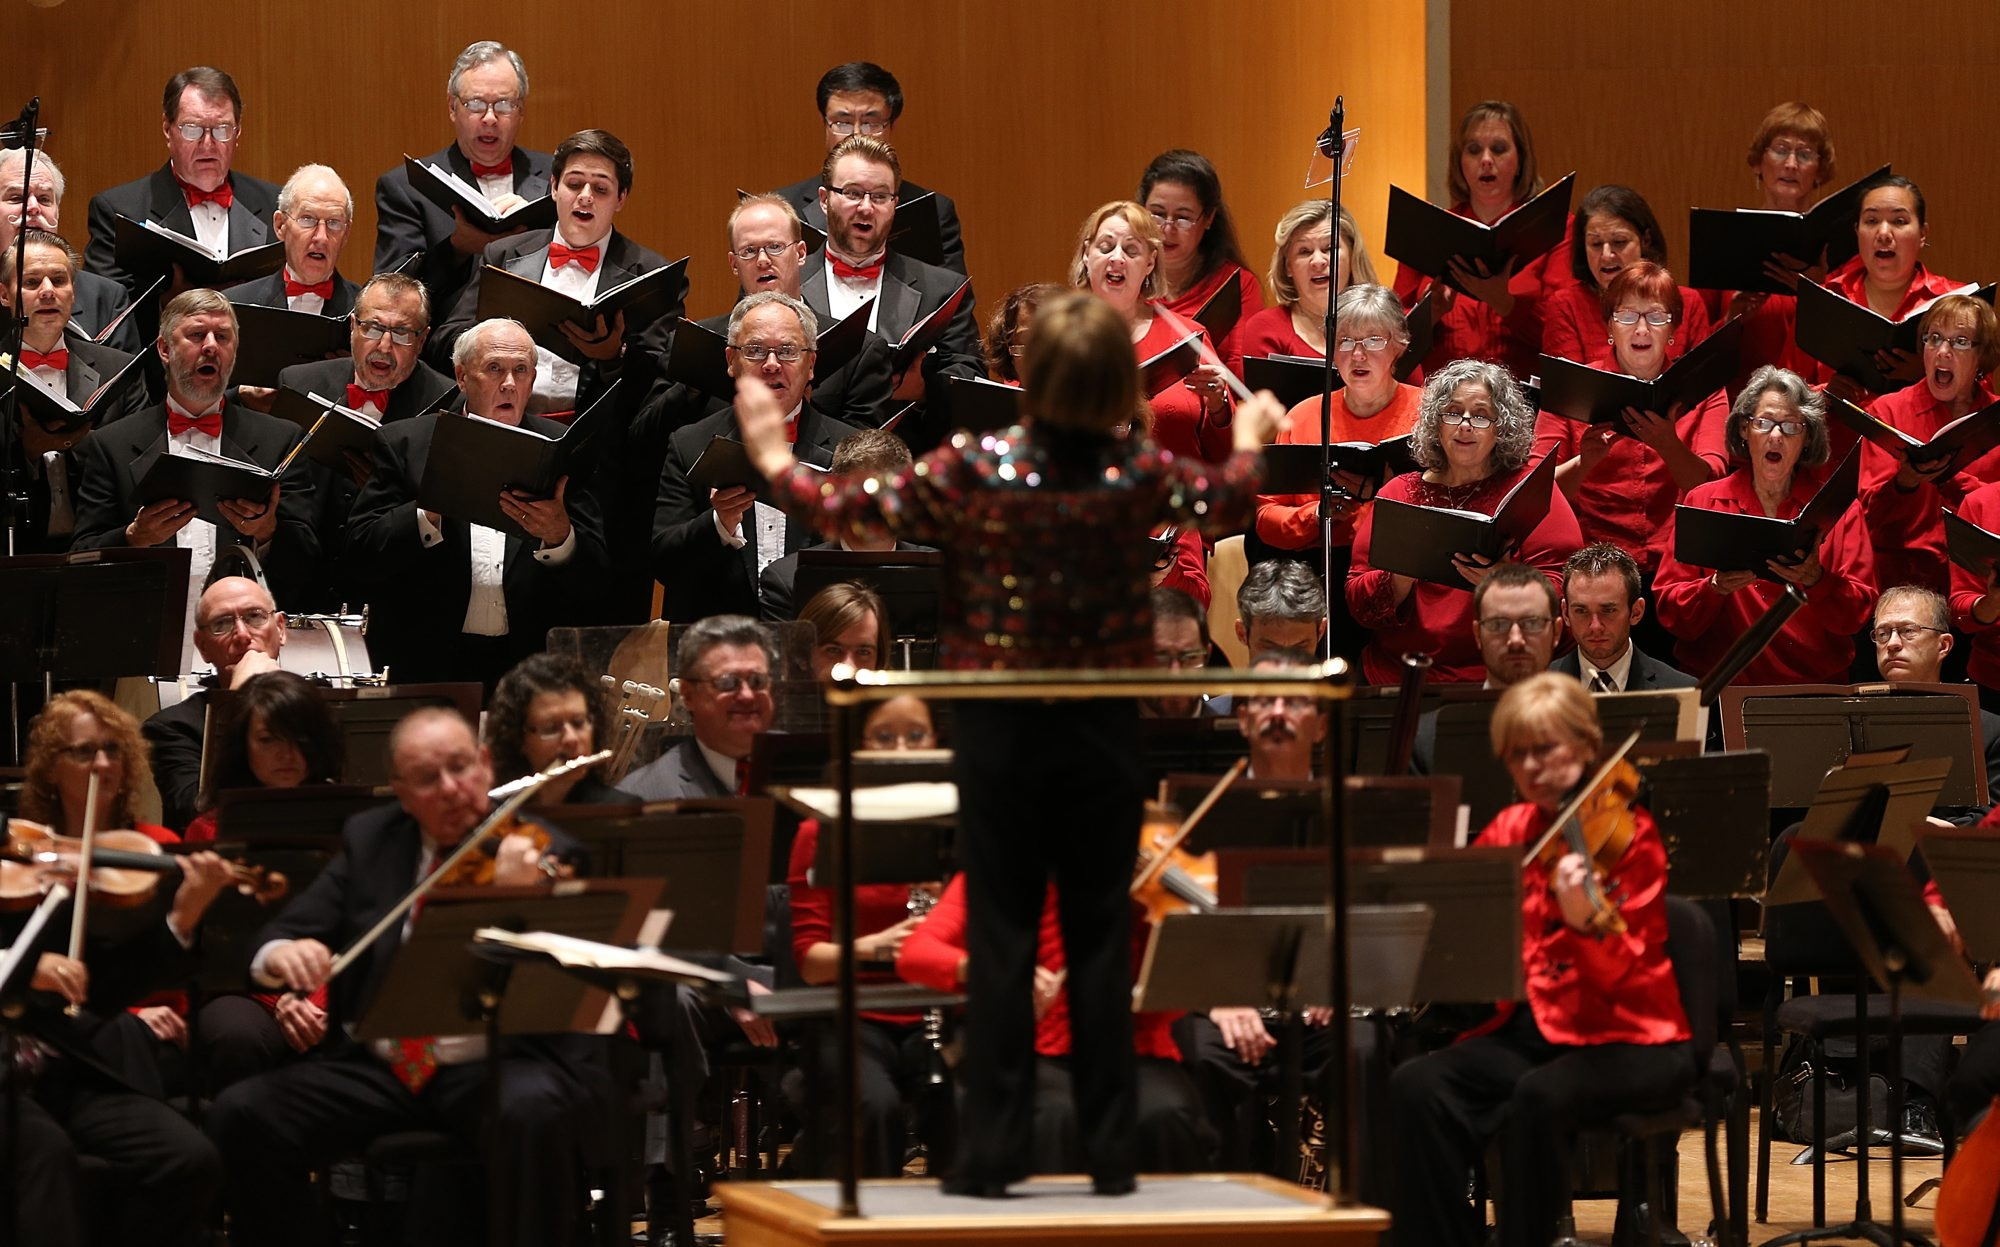 Conductor JoAnn Falletta leads the orchestra and the chorus during the Buffalo Philharmonic Orchestra's Classical Christmas program at Kleinhans Music Hall in Buffalo on Dec. 6, 2012. The BPO received a $1 million donation on Wednesday from Louis P. Ciminelli.